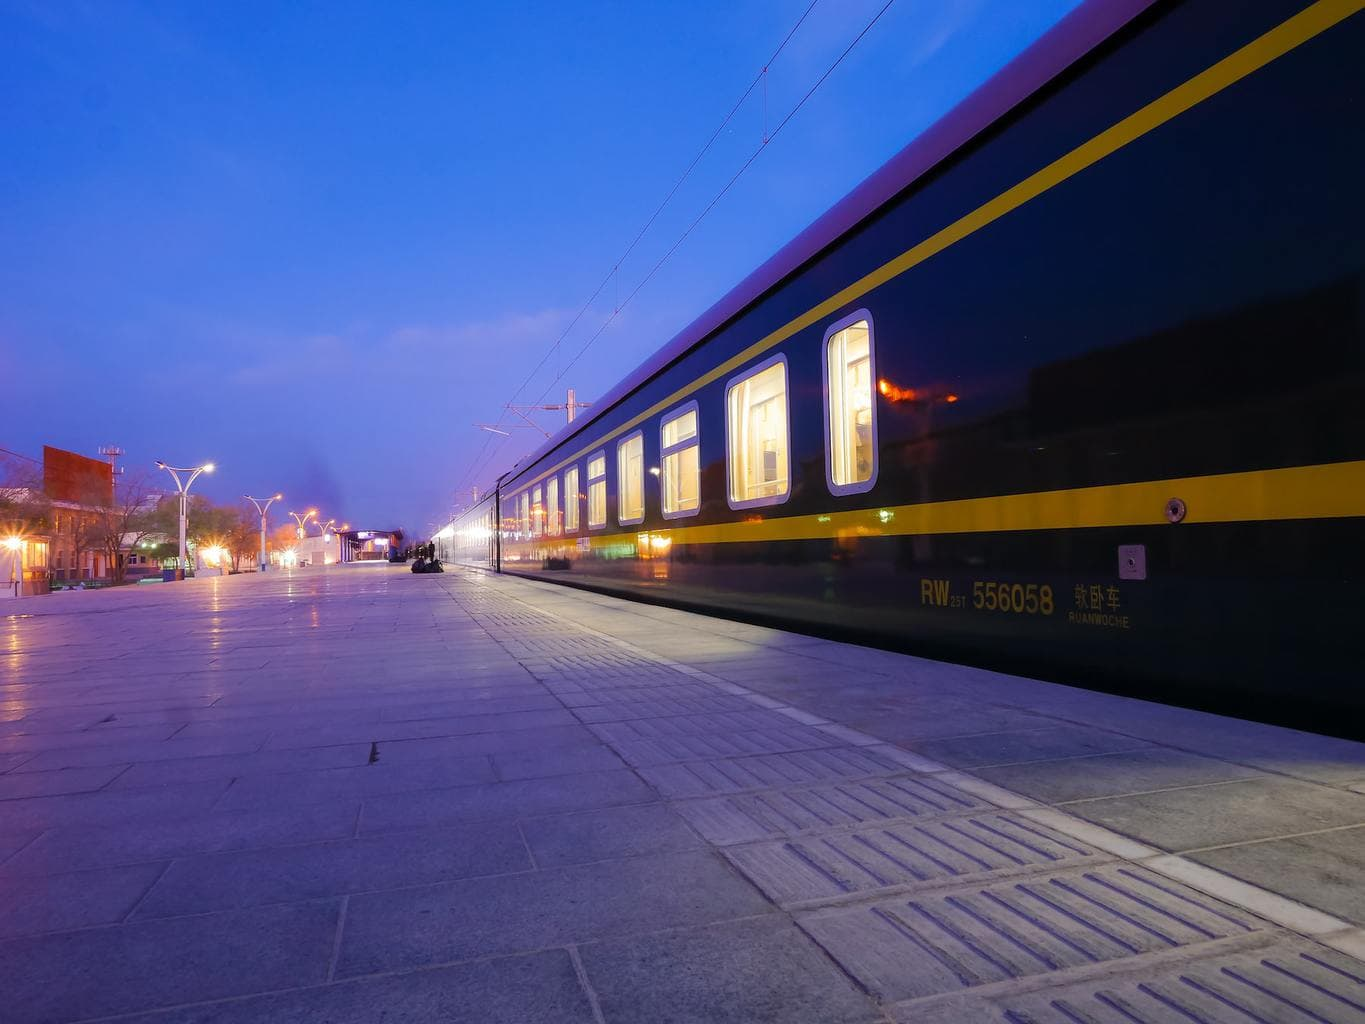 The train station at night